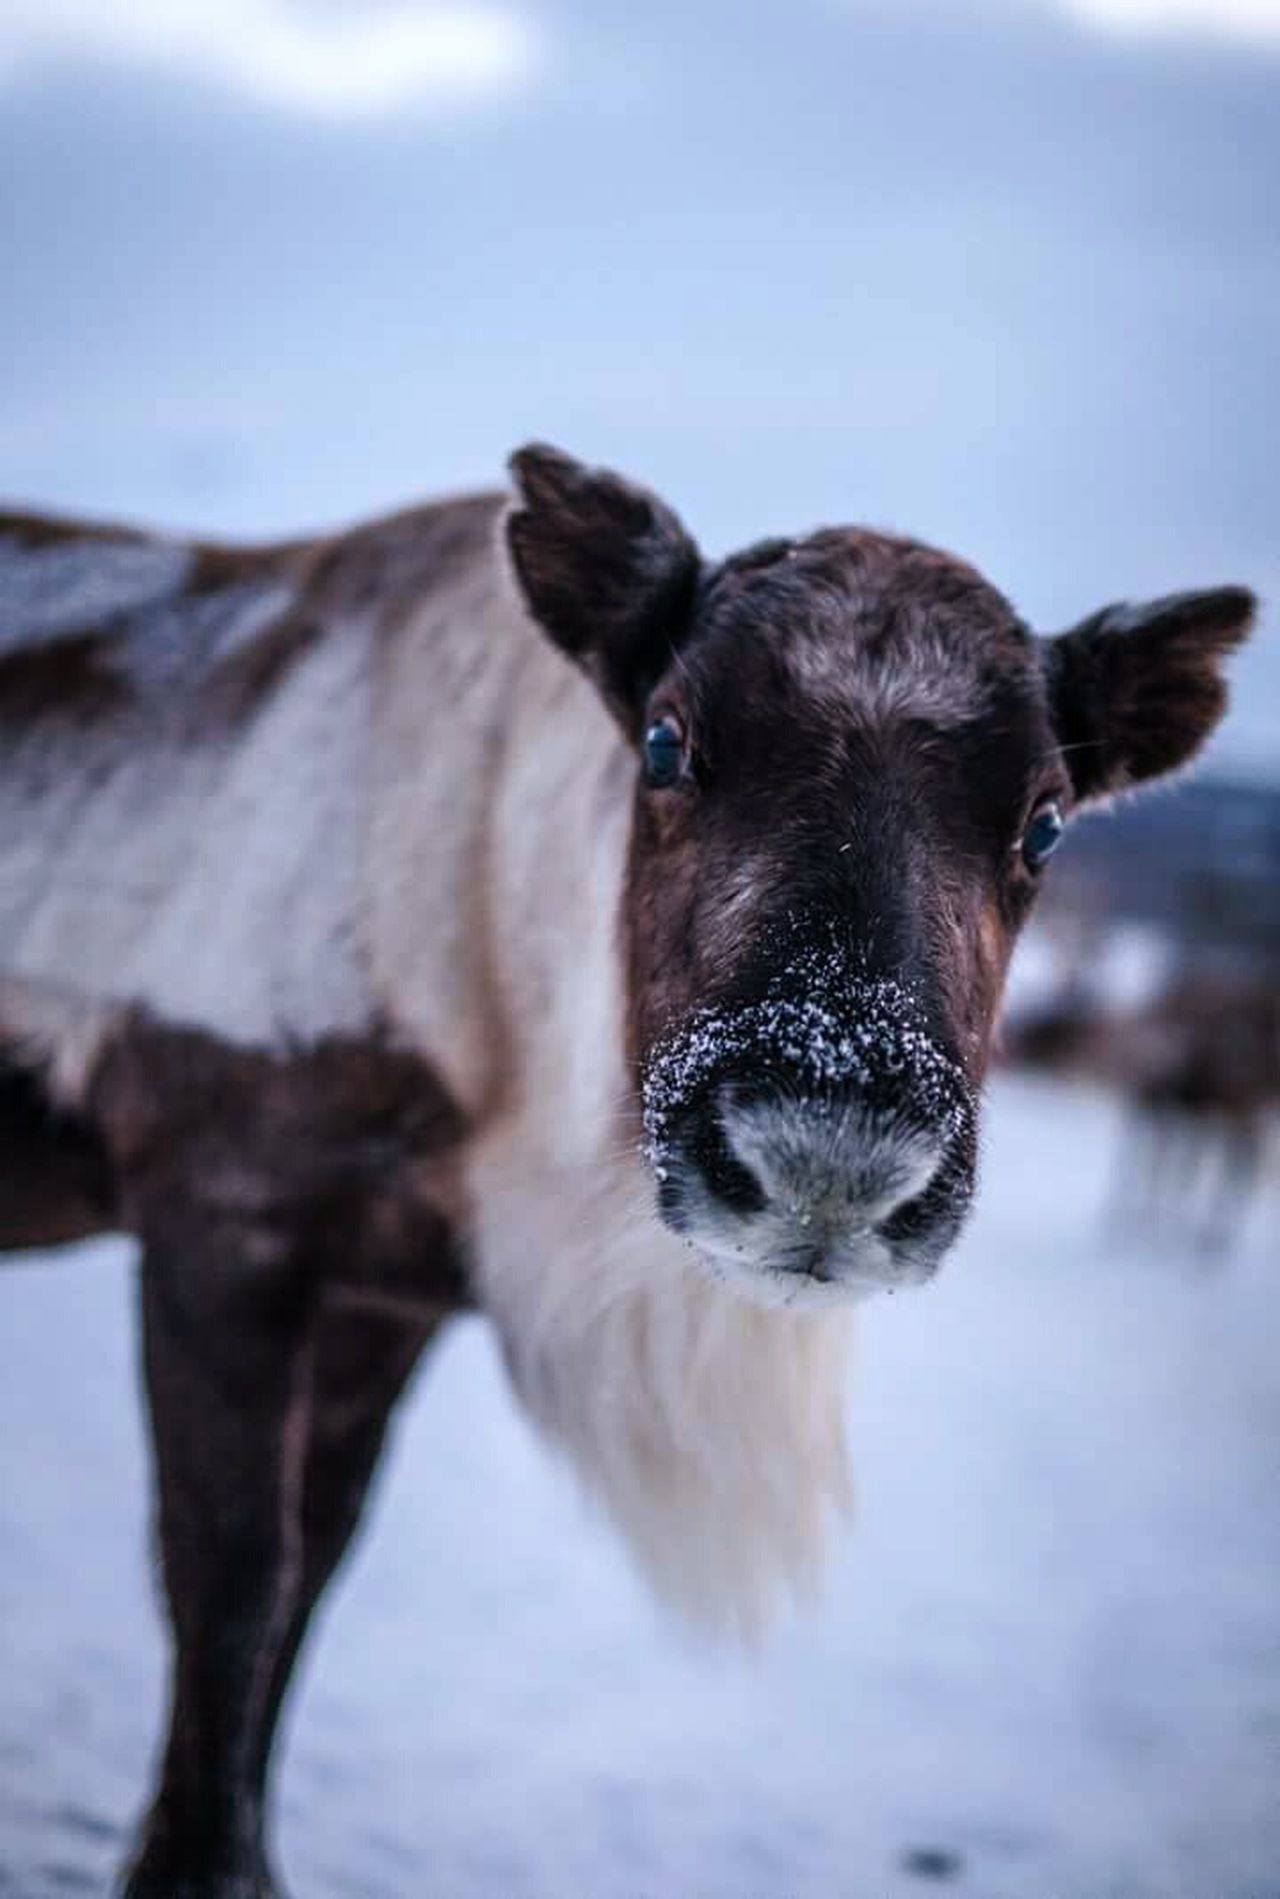 My Winter Favorites Check This Out Reindeer North Arctic Rudolf Xmas Time Wintertime Snow Tromsø Norway Hello World Peaceful Cute